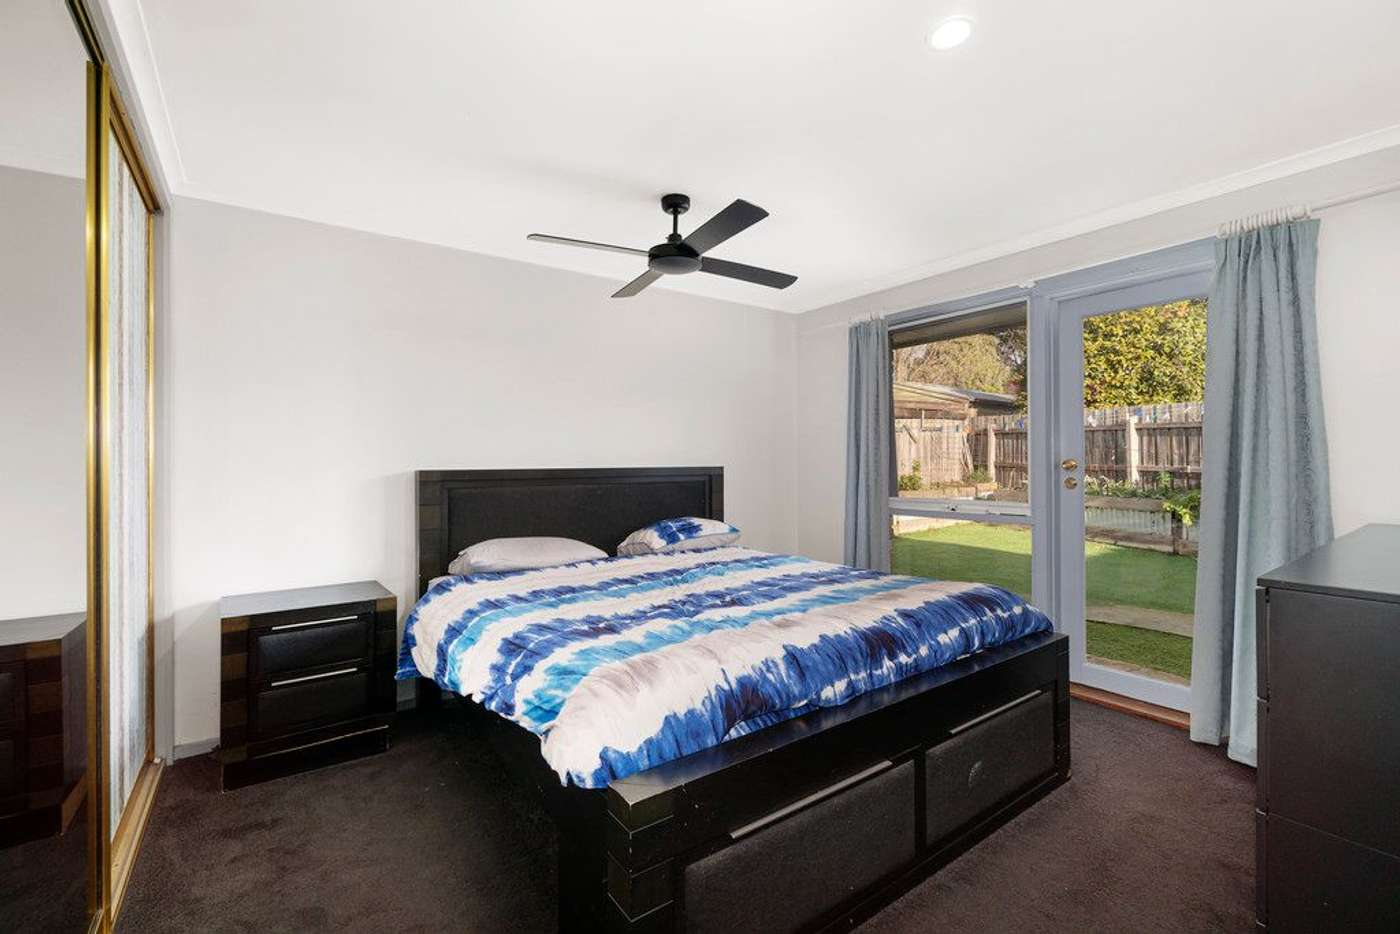 Sixth view of Homely house listing, 43 Sasses Avenue, Bayswater VIC 3153